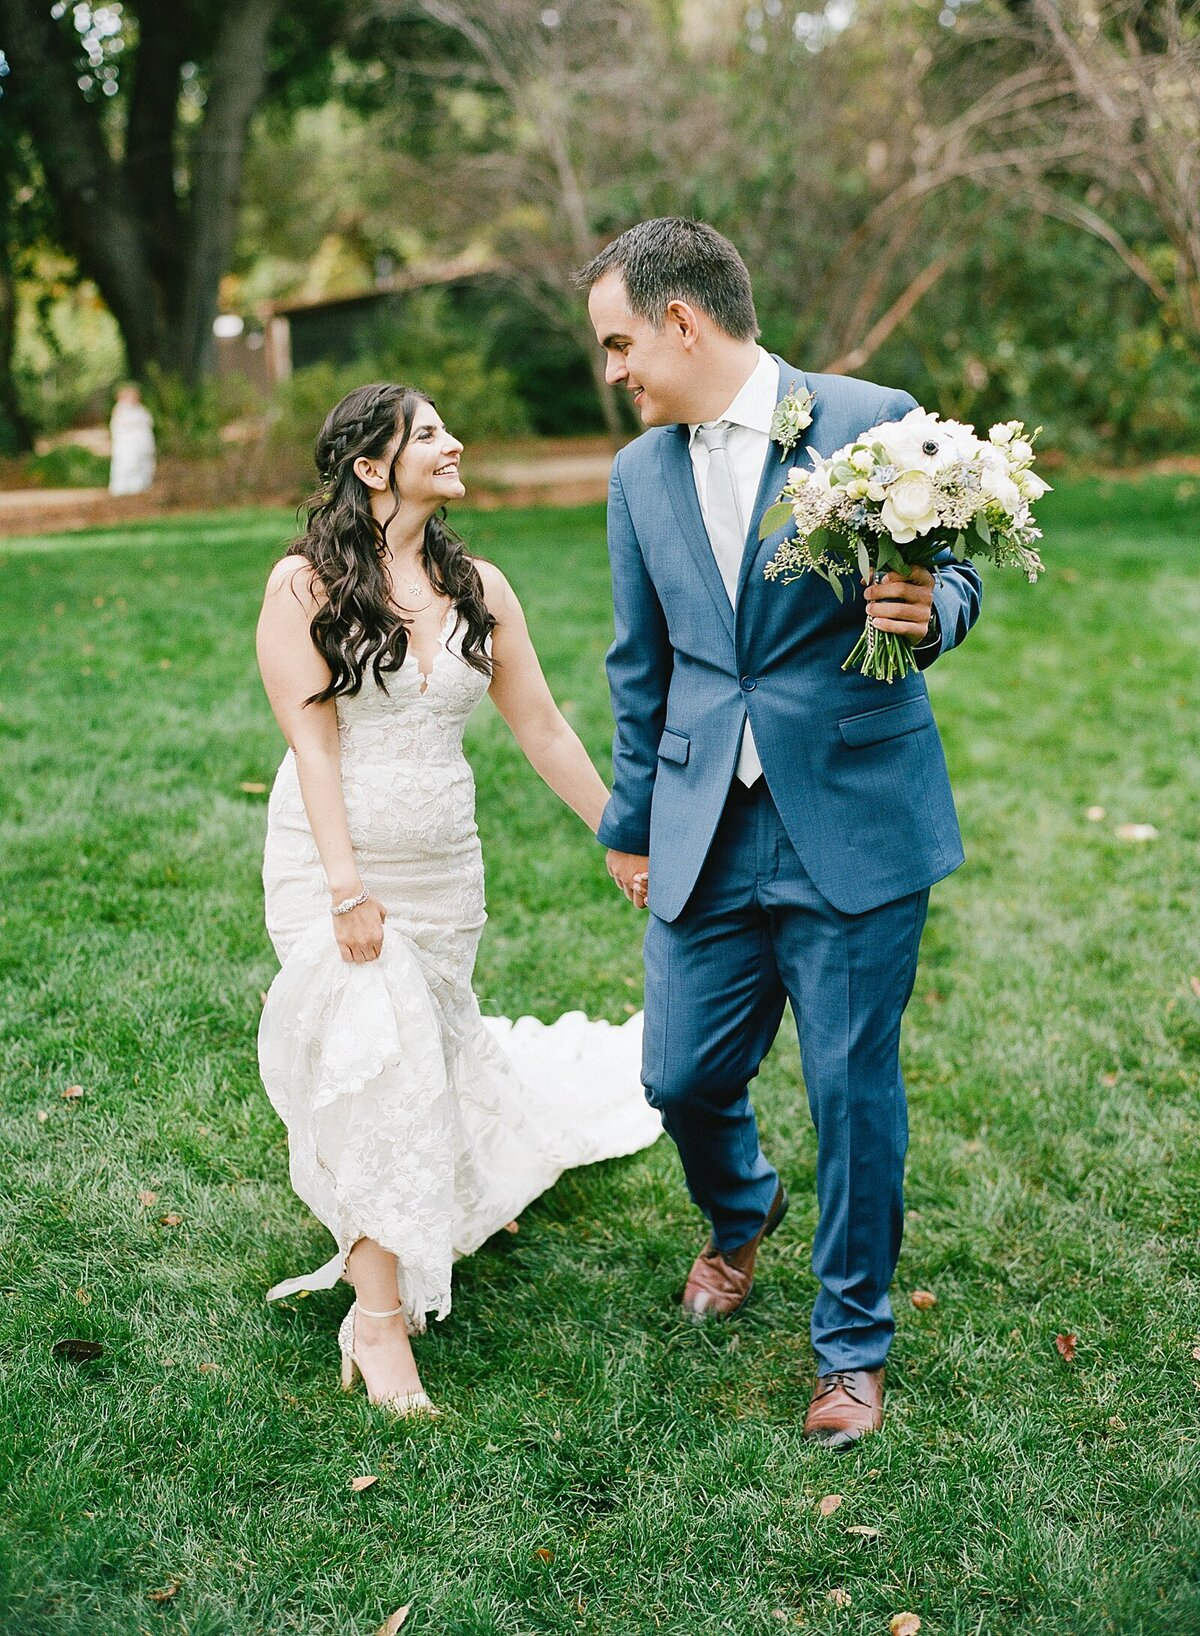 wedding-day-portraits-Gardener-Ranch-Carmel-California